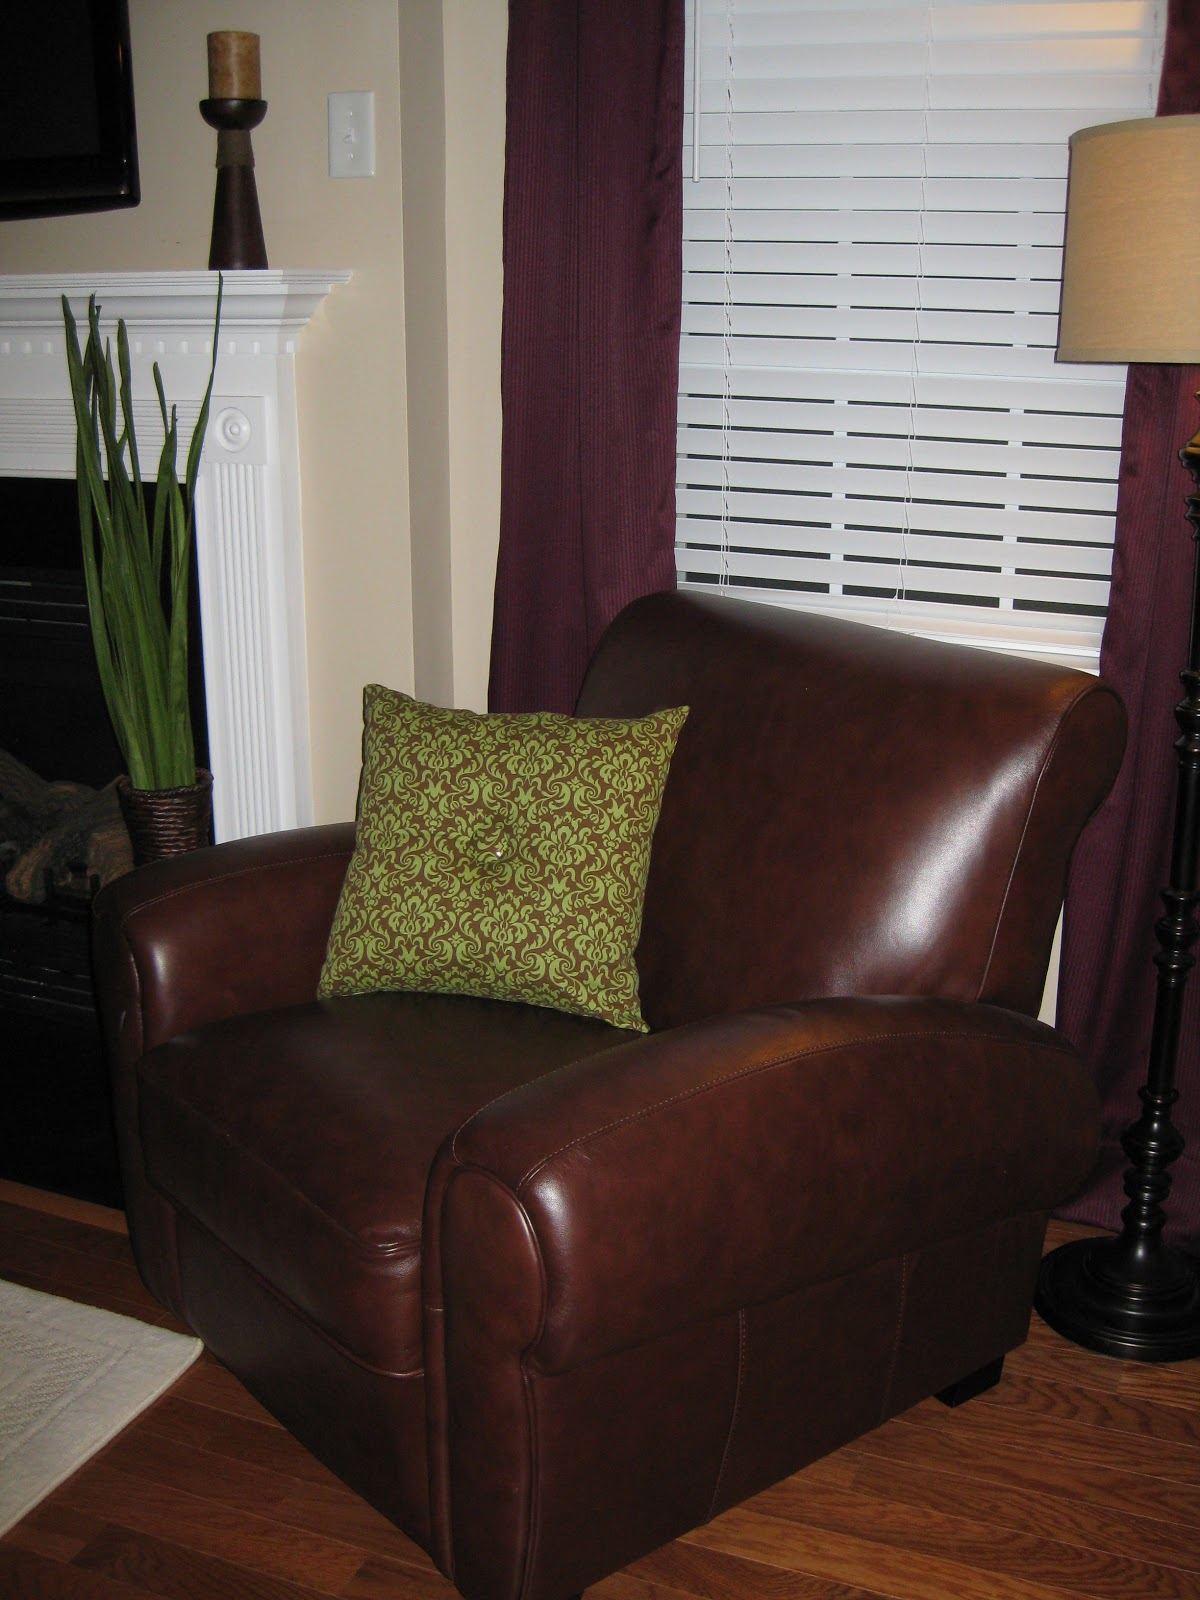 Homemade Living Room Pillows  Laforce Be With You. Organizing Kitchen Cabinets Small Kitchen. Kitchen Cabinets Factory Direct. New Metal Kitchen Cabinets. Kitchen Cabinets Idea. Modern Painted Kitchen Cabinets. What Is Kitchen Cabinet Refacing. Kitchen Cabinet Costs. Unfinished Kitchen Cabinets Menards